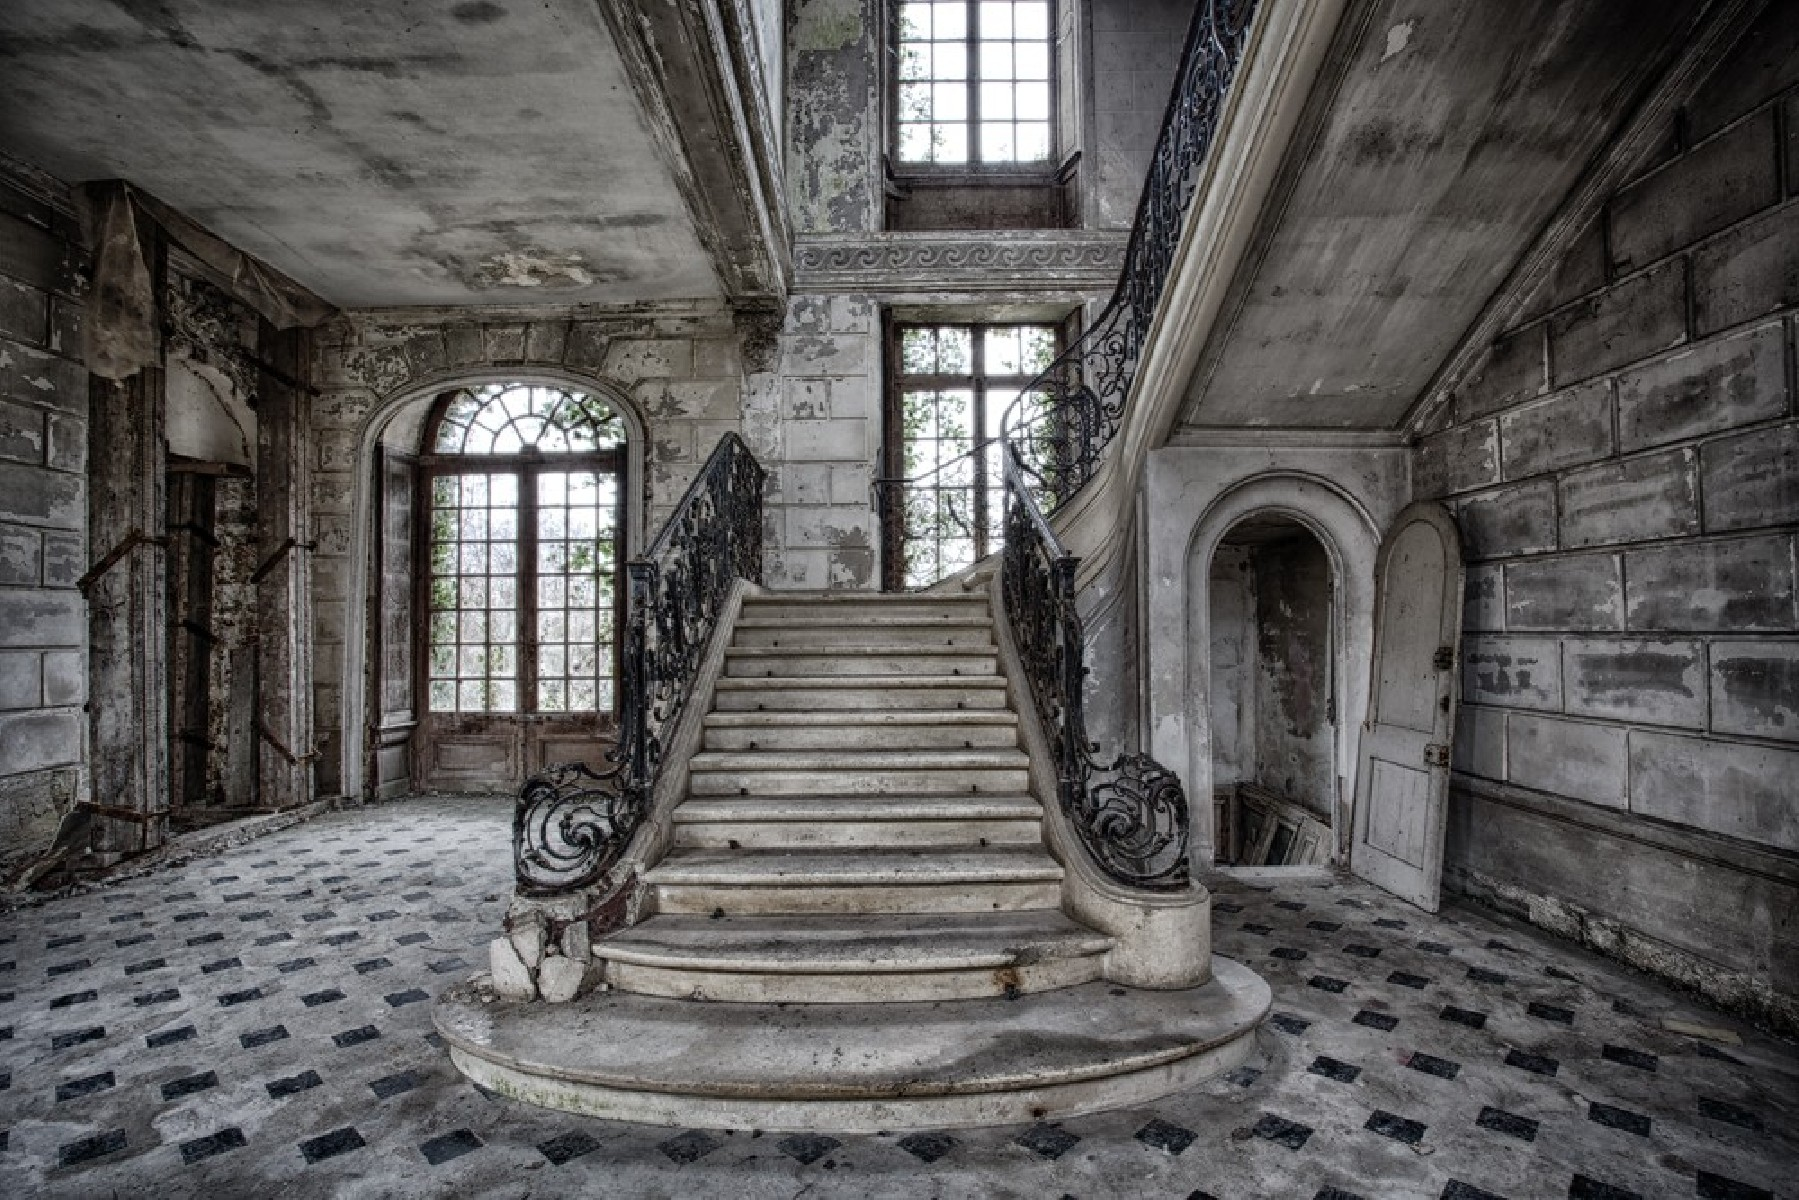 Stairway to the ghosts